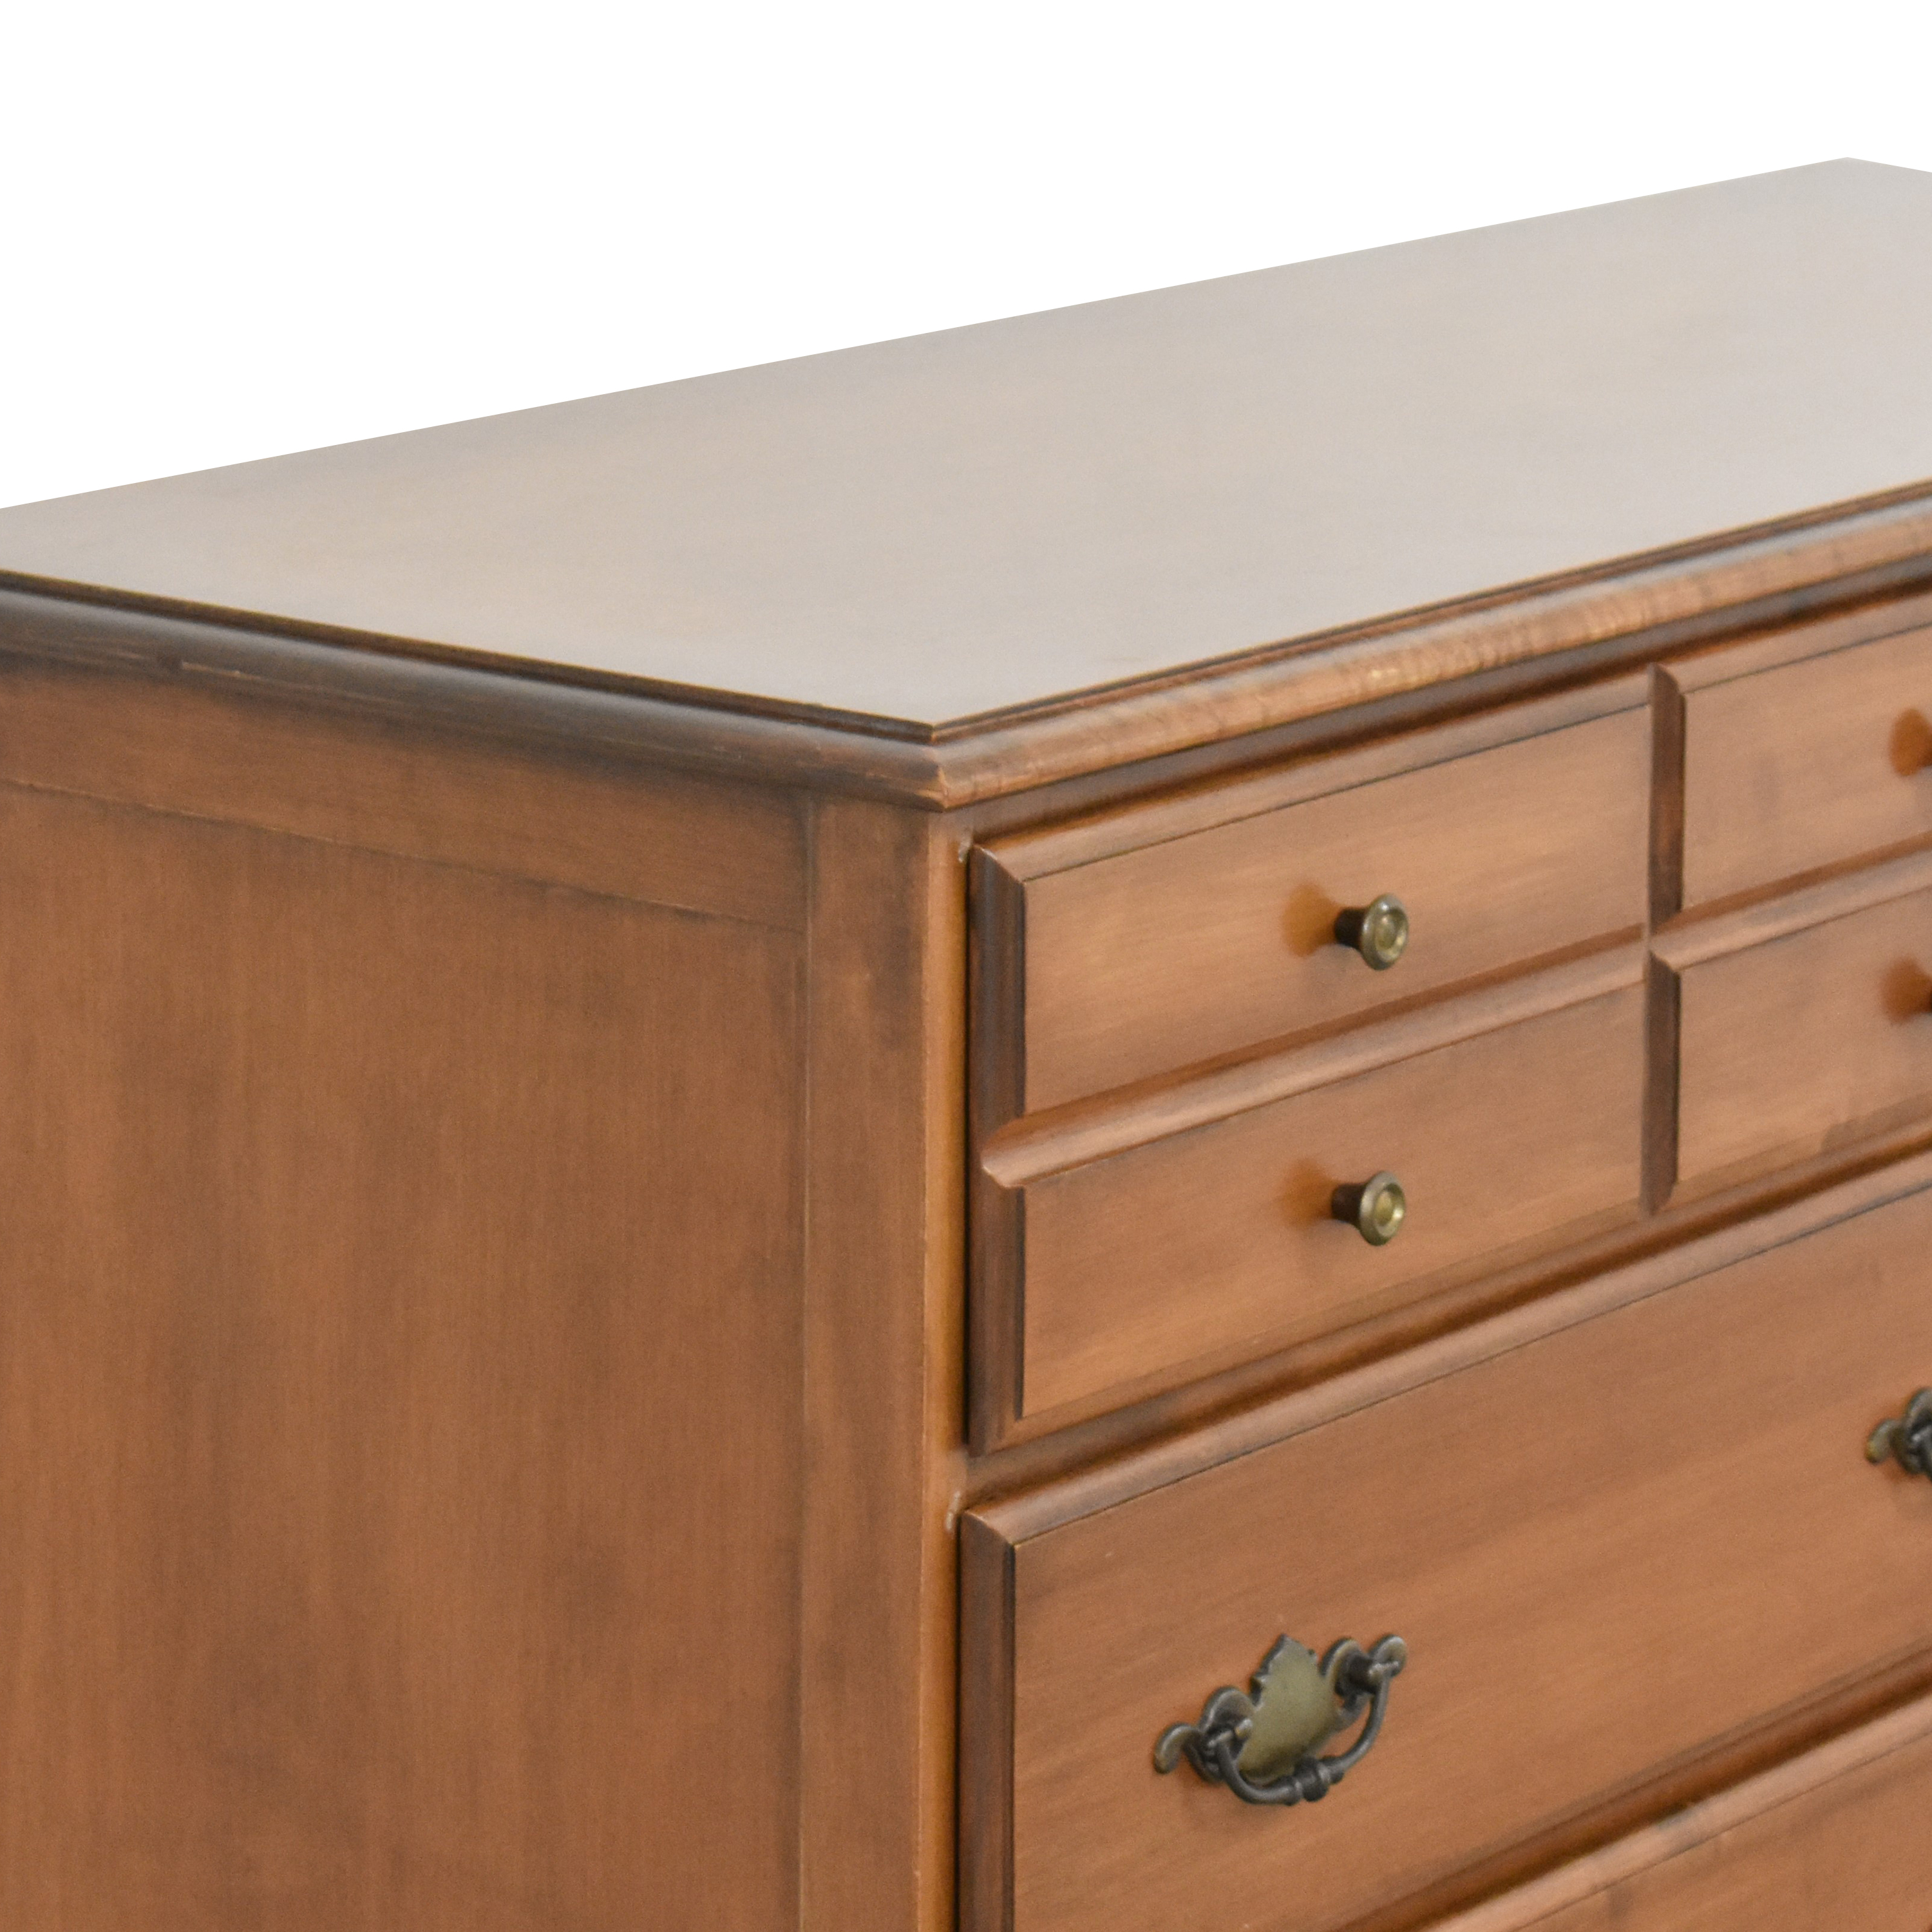 Four Drawer Dresser with Cabinet price